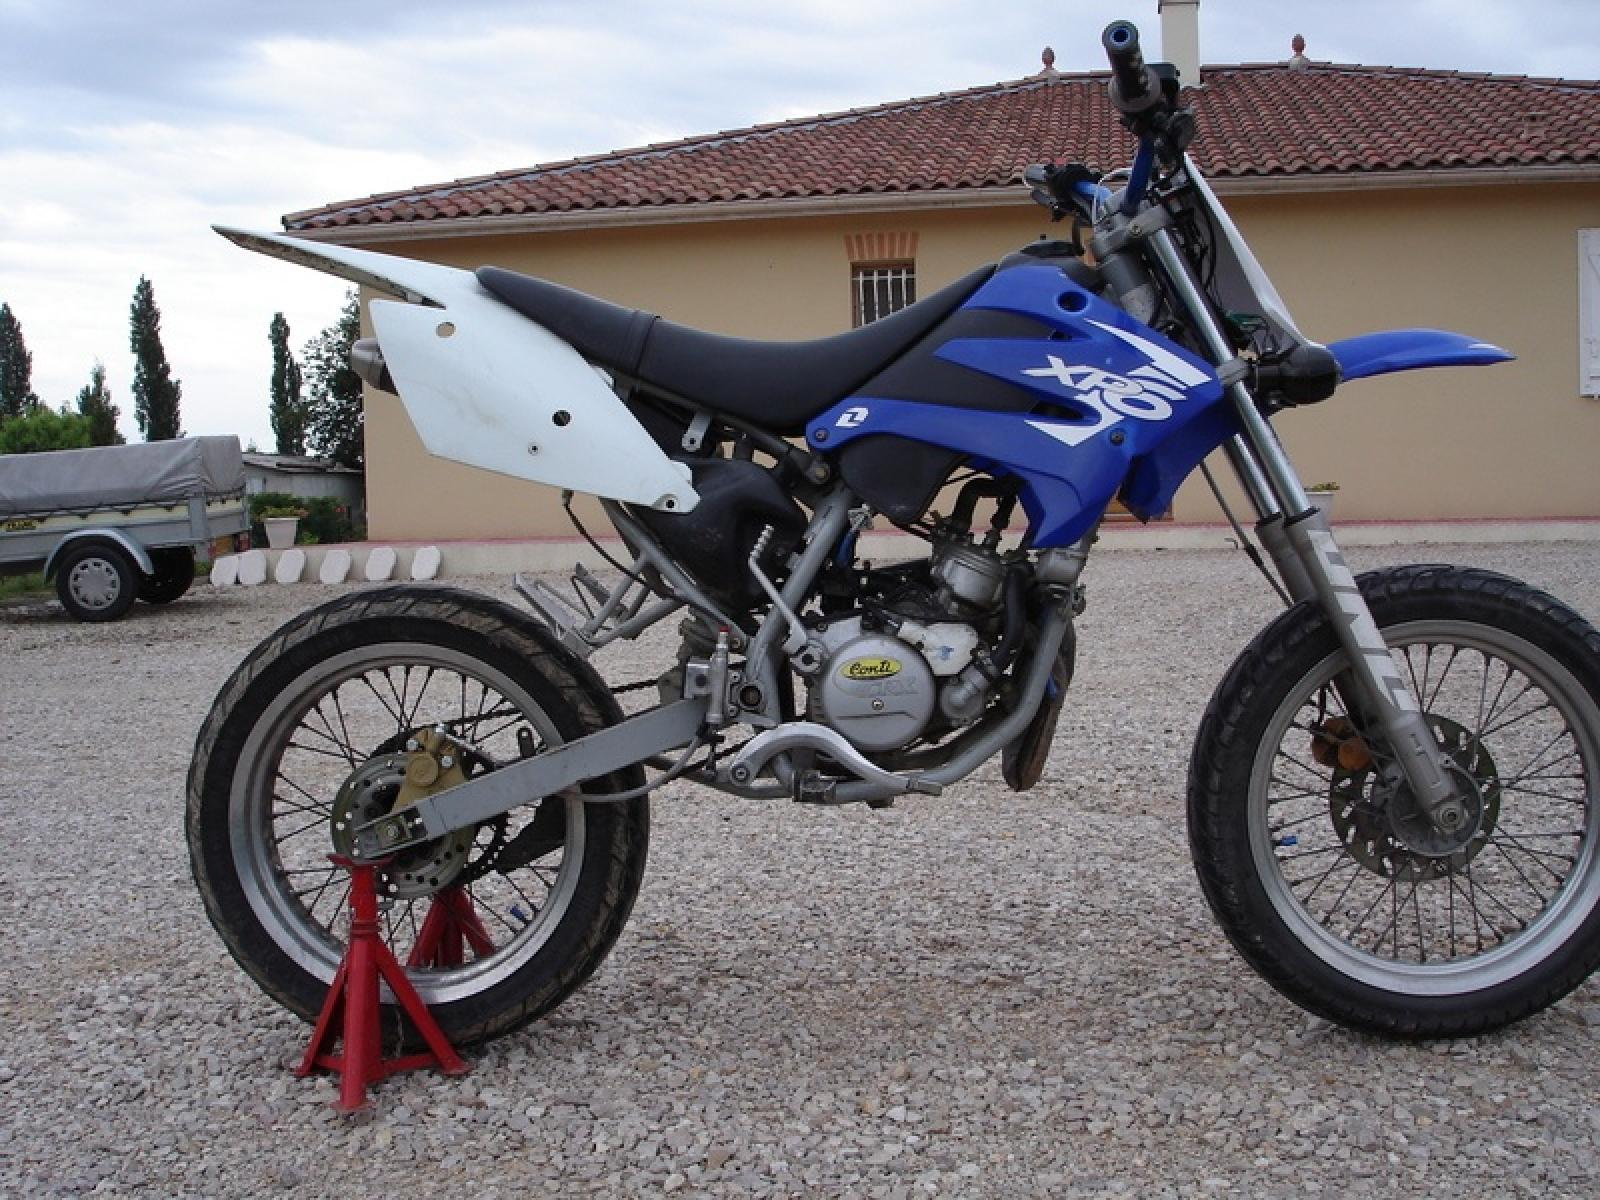 Peugeot XP6 50 Supermotard 2006 images #120117